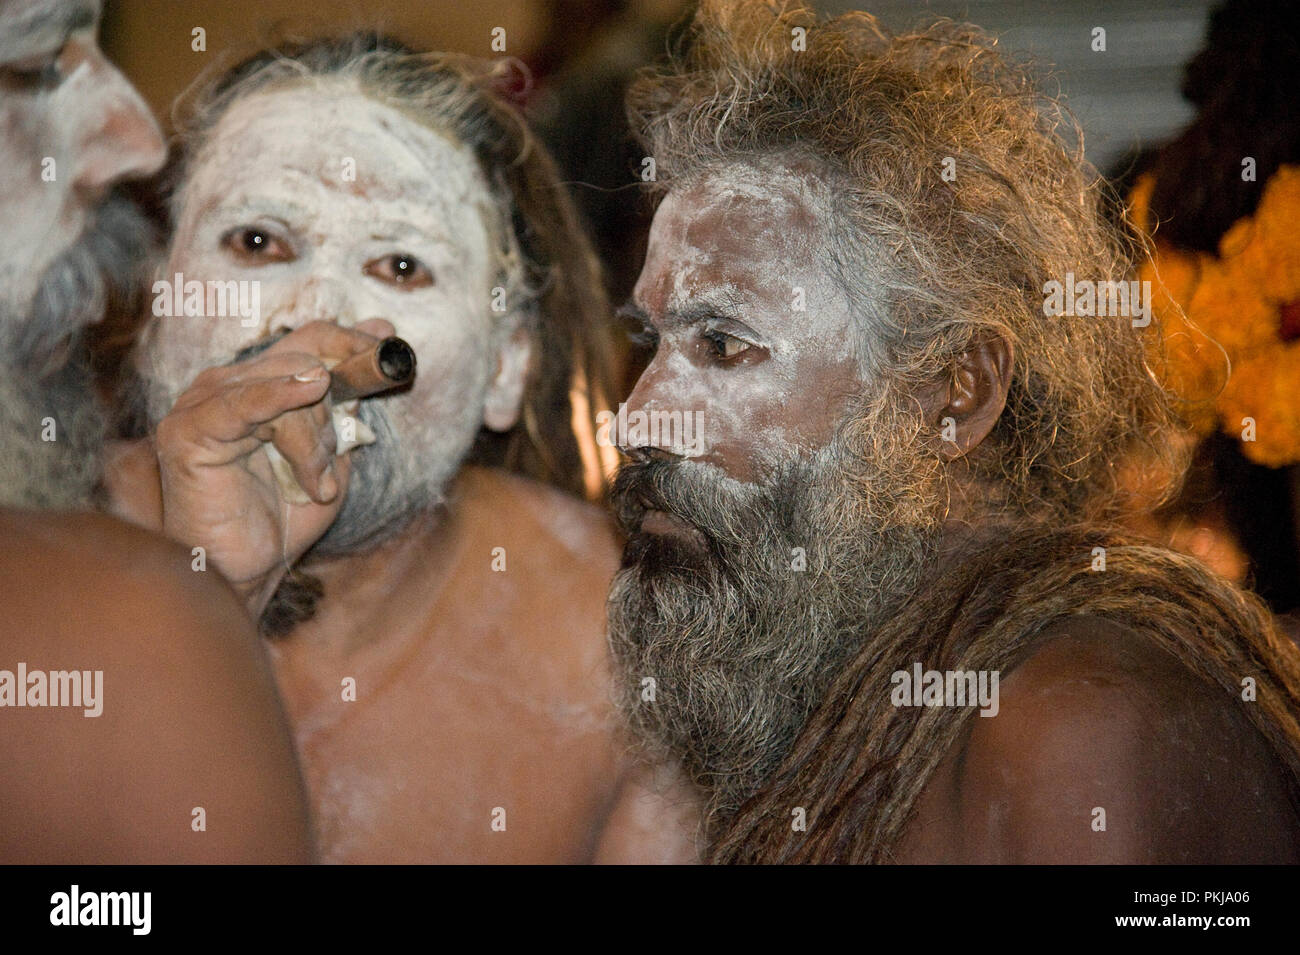 Naga Sadhu smoking a chillum at maharashtra India - Stock Image